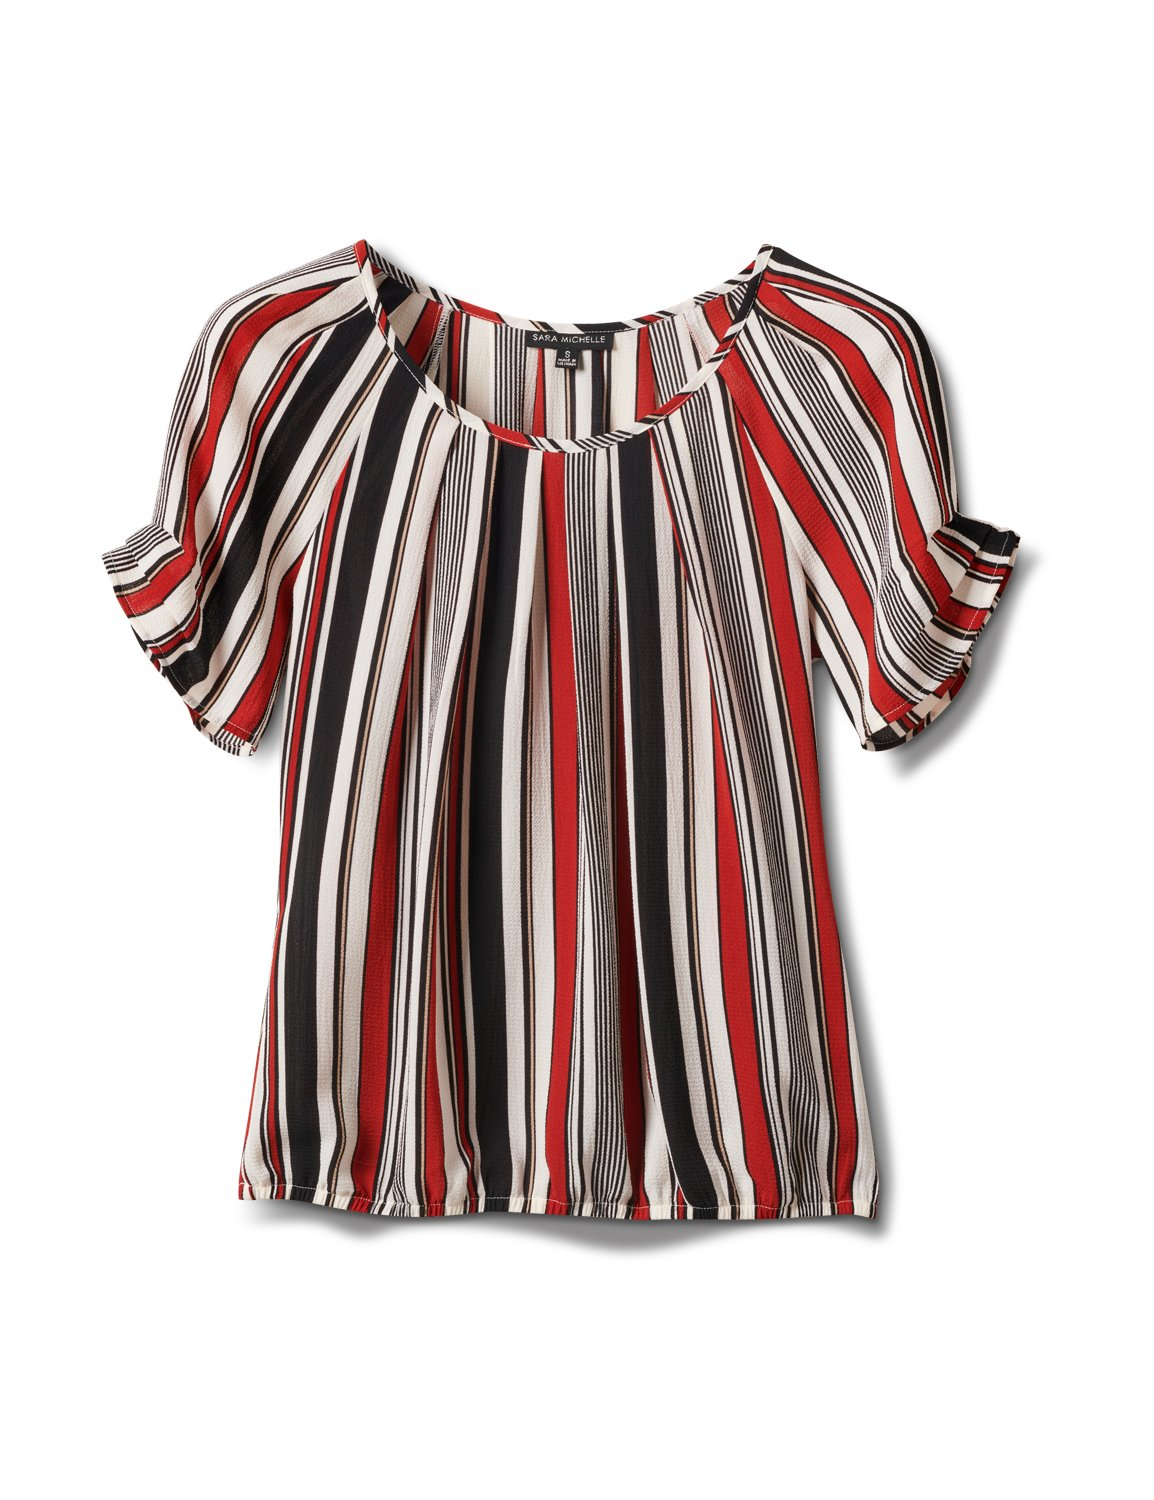 Multi Stripe Bubble Hem Blouse -Offwhite/Black/Rust - Front